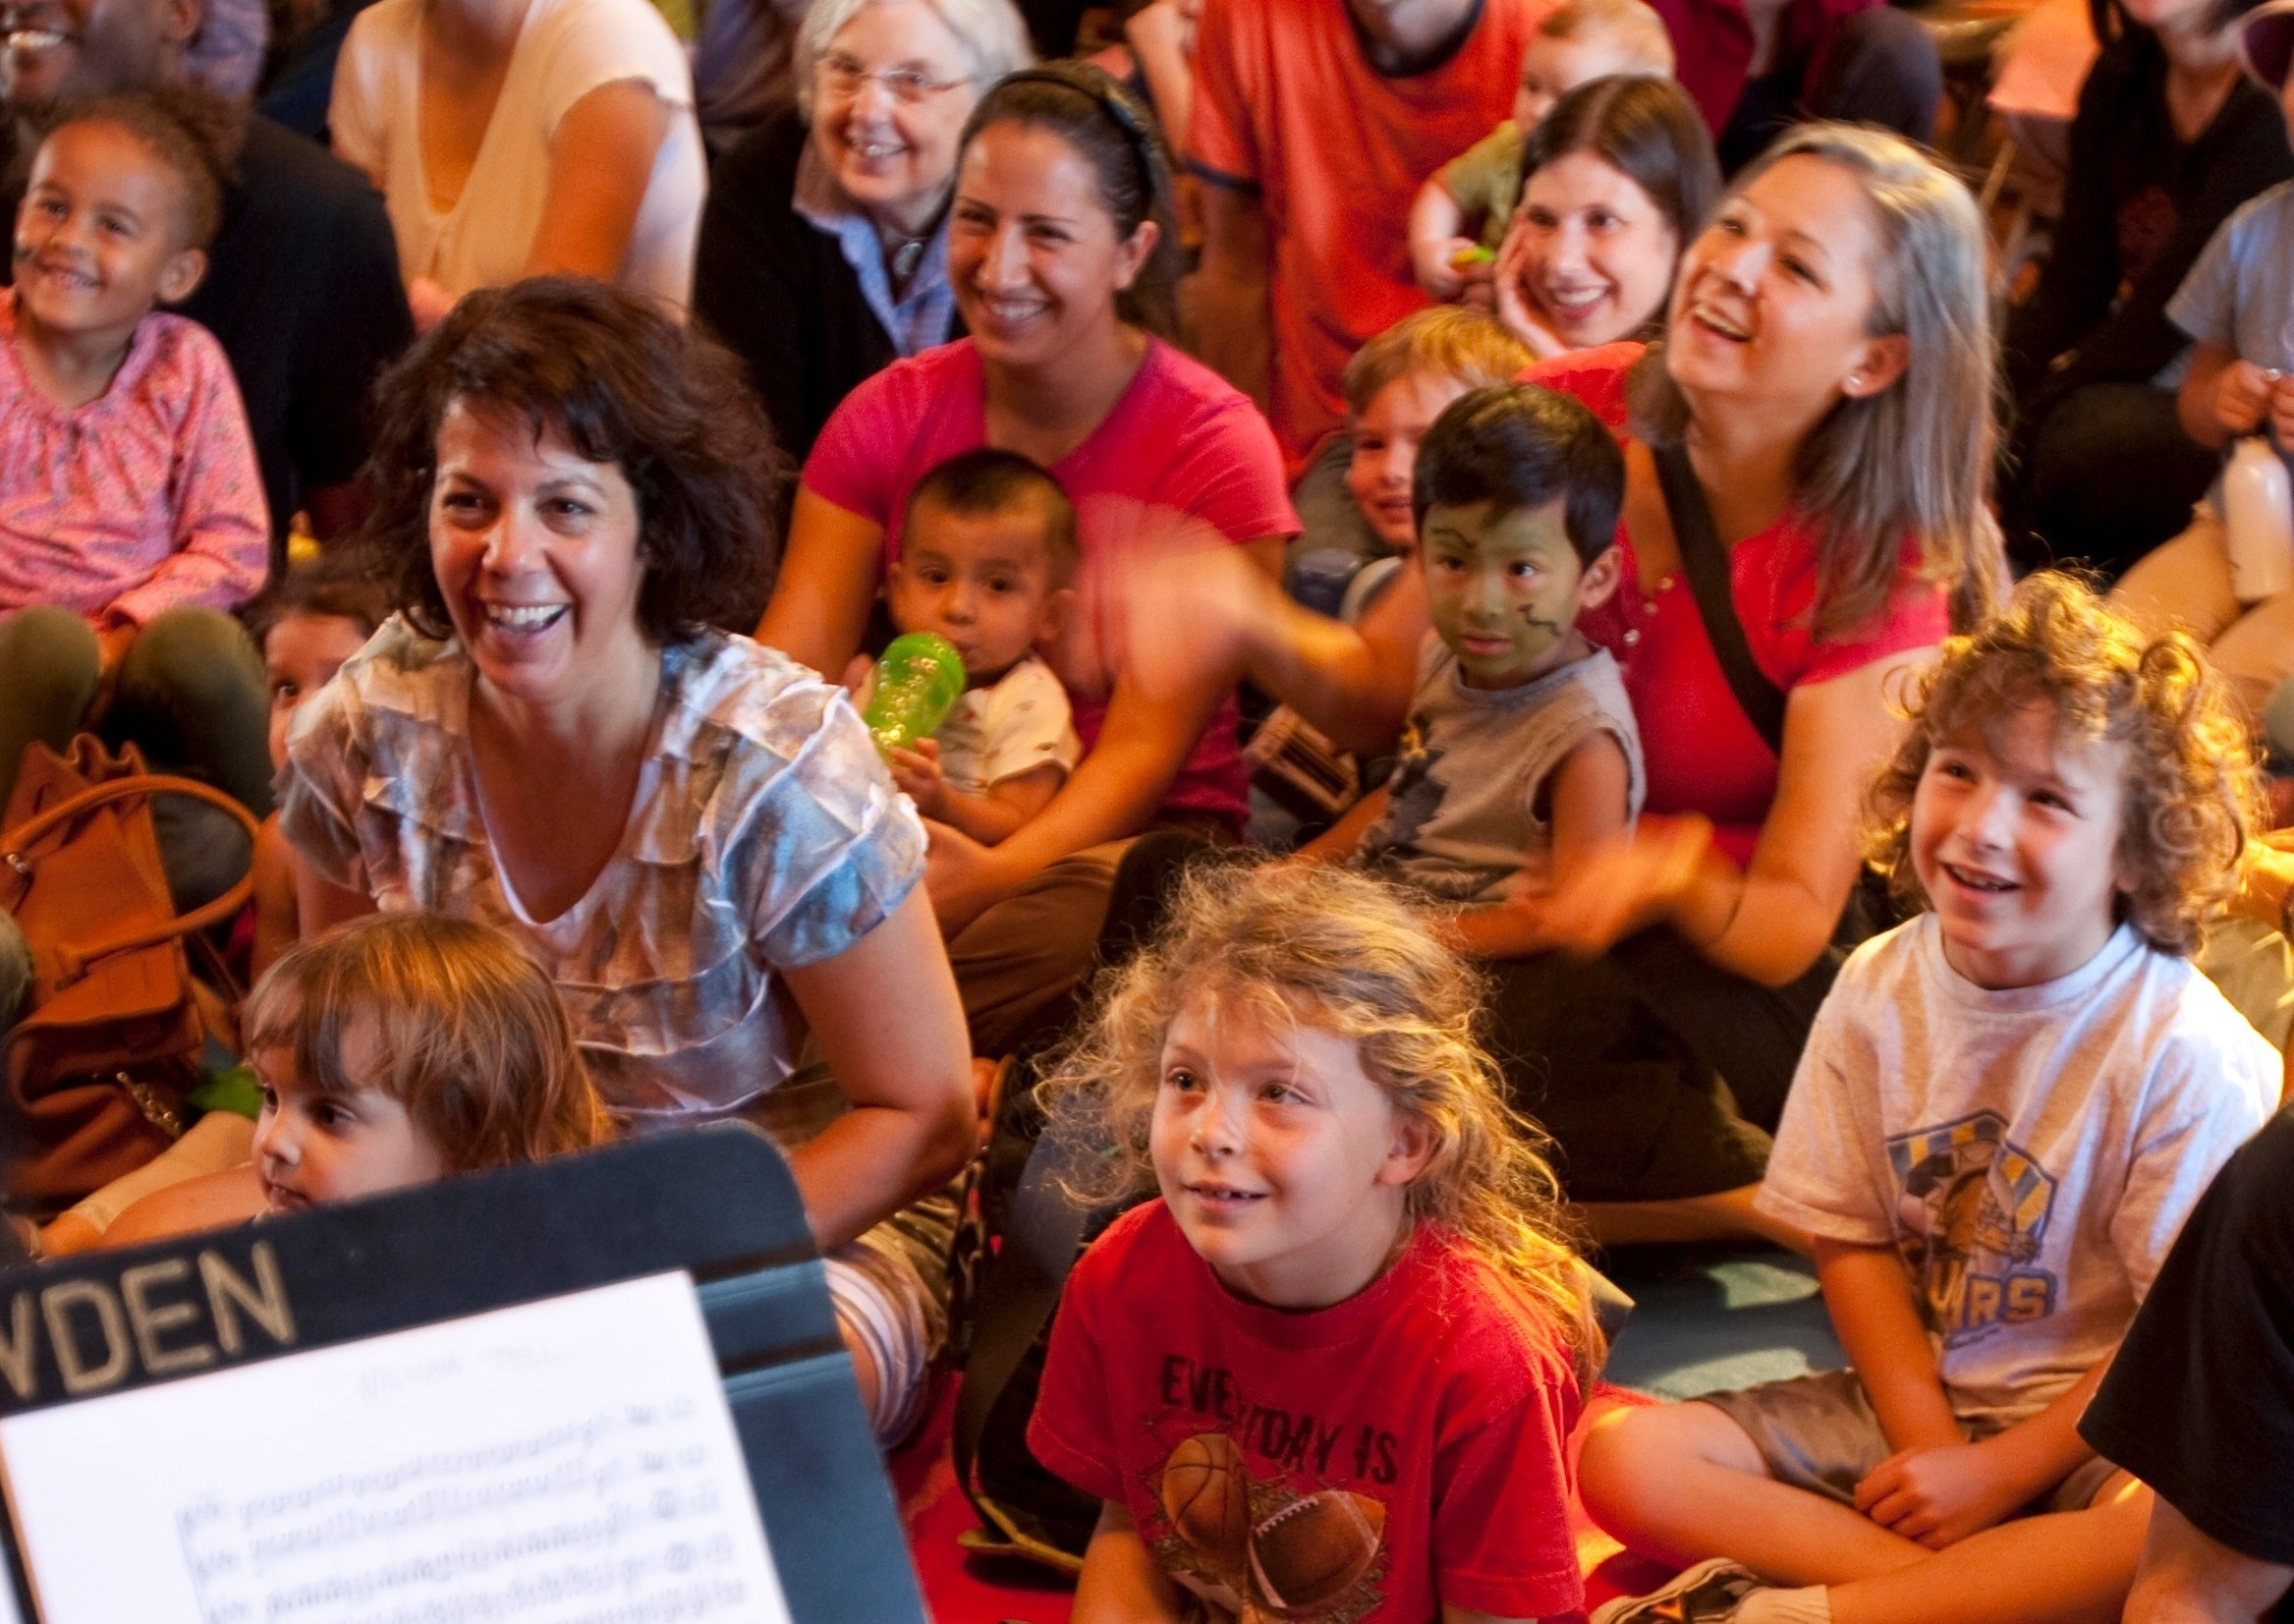 Did you say admission-free? - Absolutely! We're proud to be unique among this nation's professional orchestras, breaking down the barriers for enjoyment and appreciation of this great art.Support the SFCO